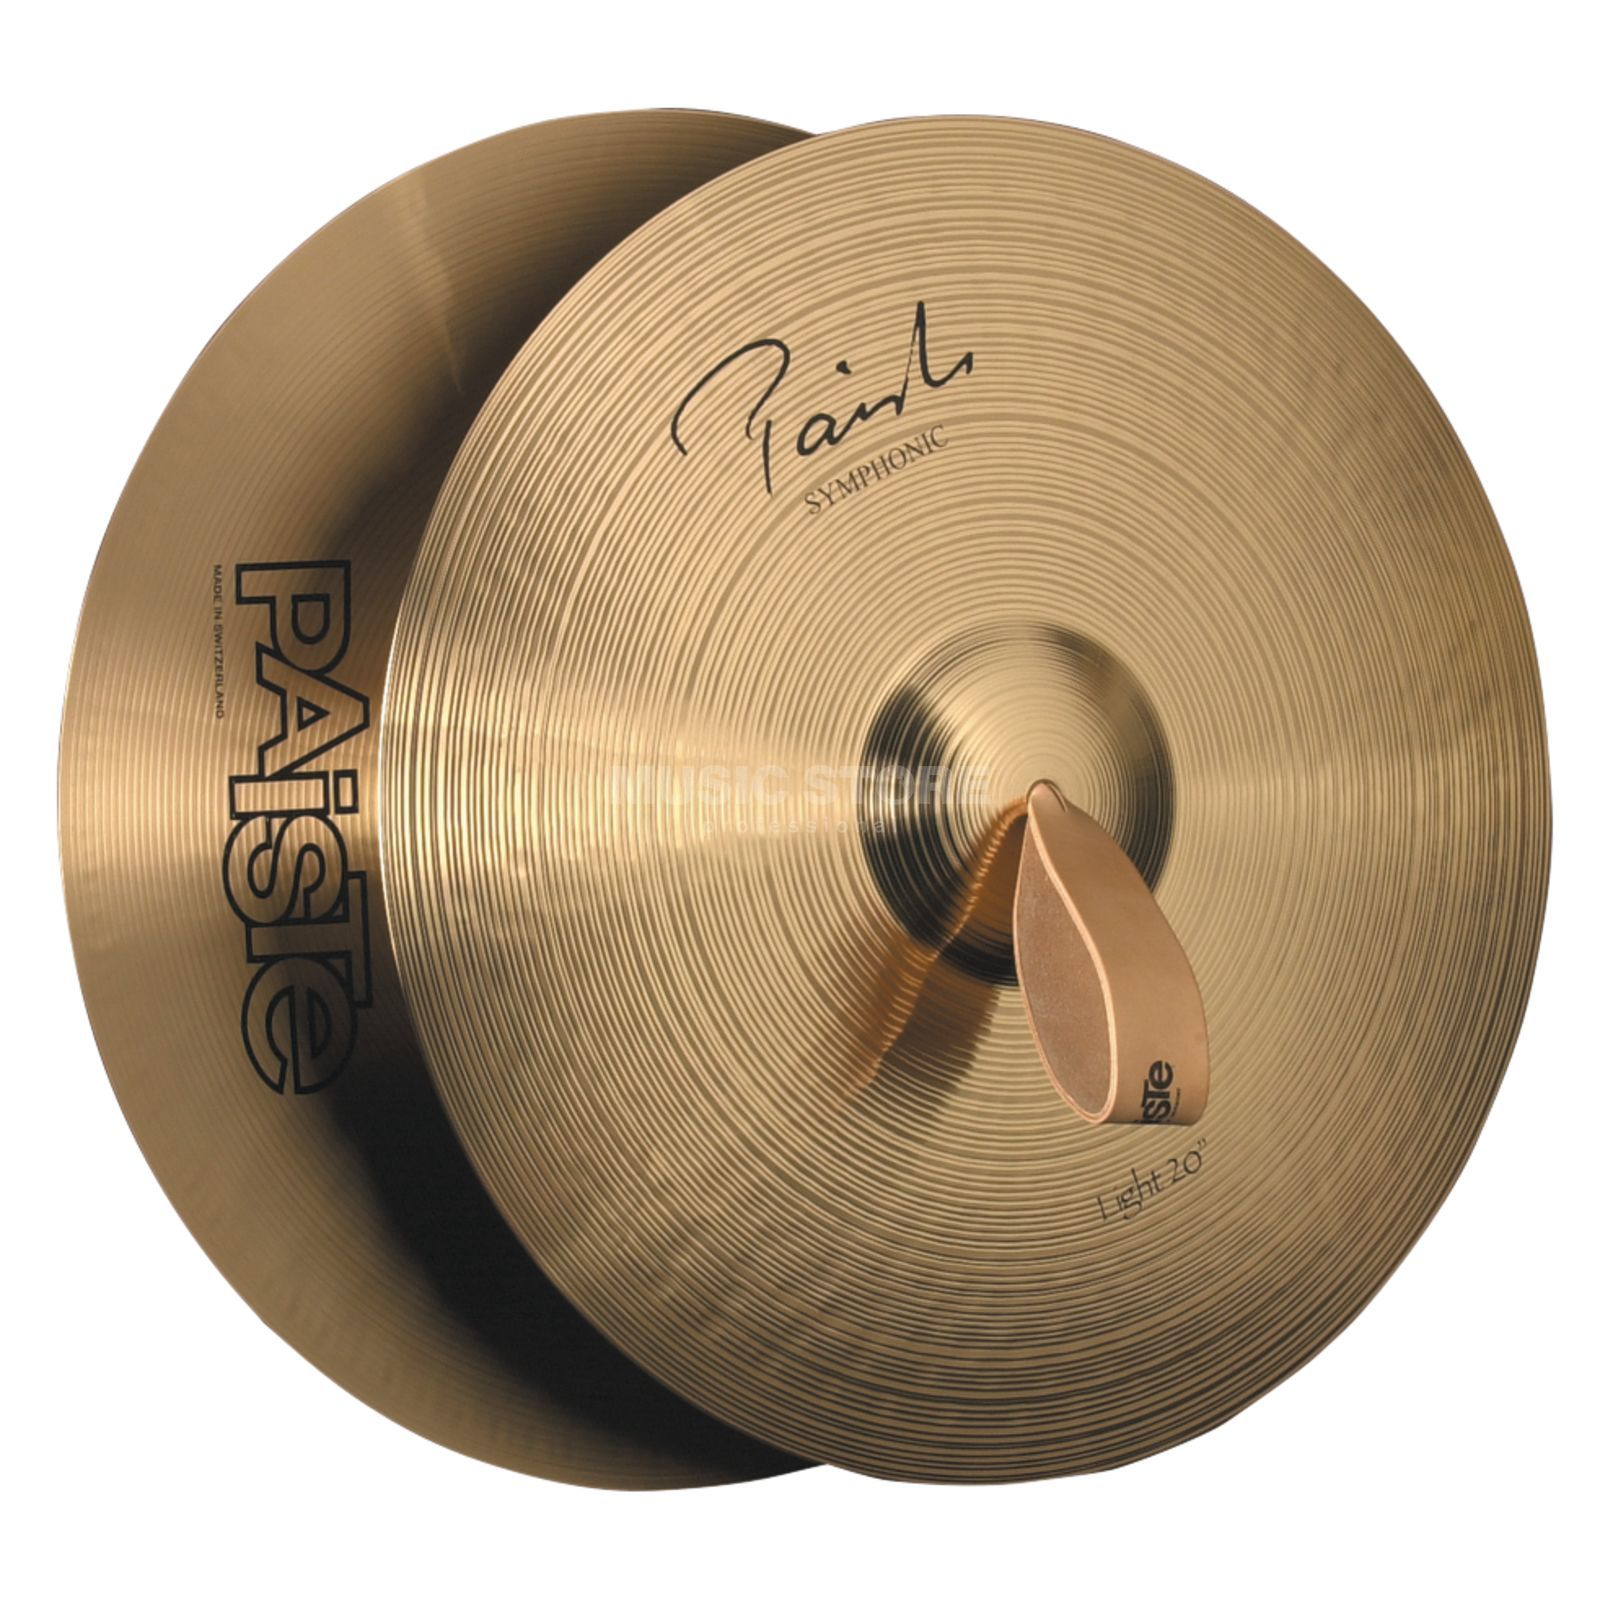 "Paiste Symphonic Orchestra Cymbals, 20"", Medium Light Product Image"